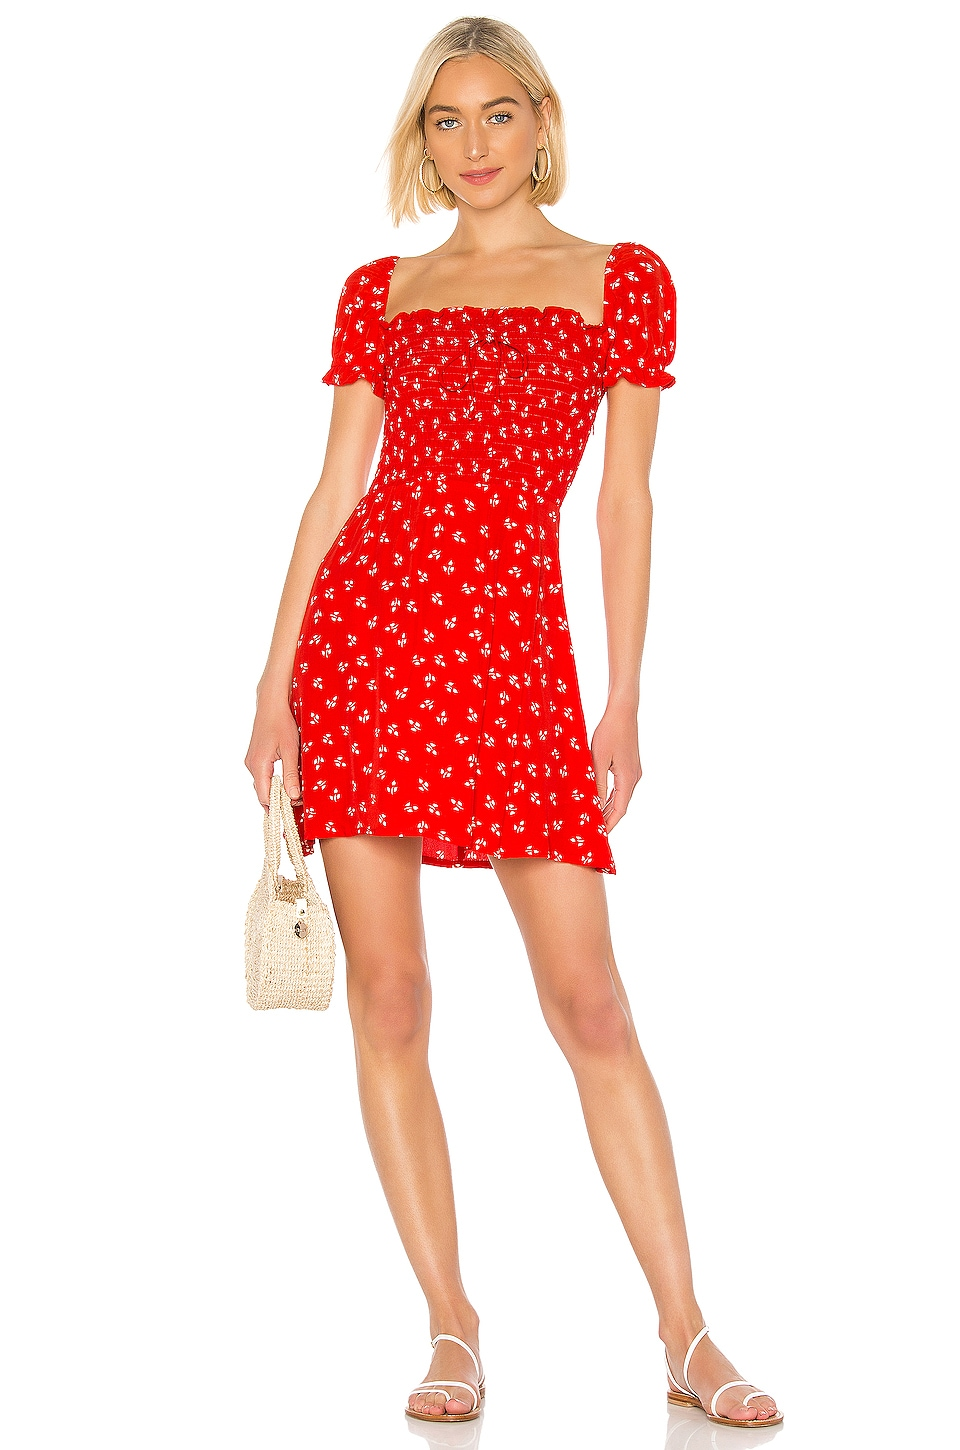 FAITHFULL THE BRAND Genevieve Dress in Cherry Jeanne